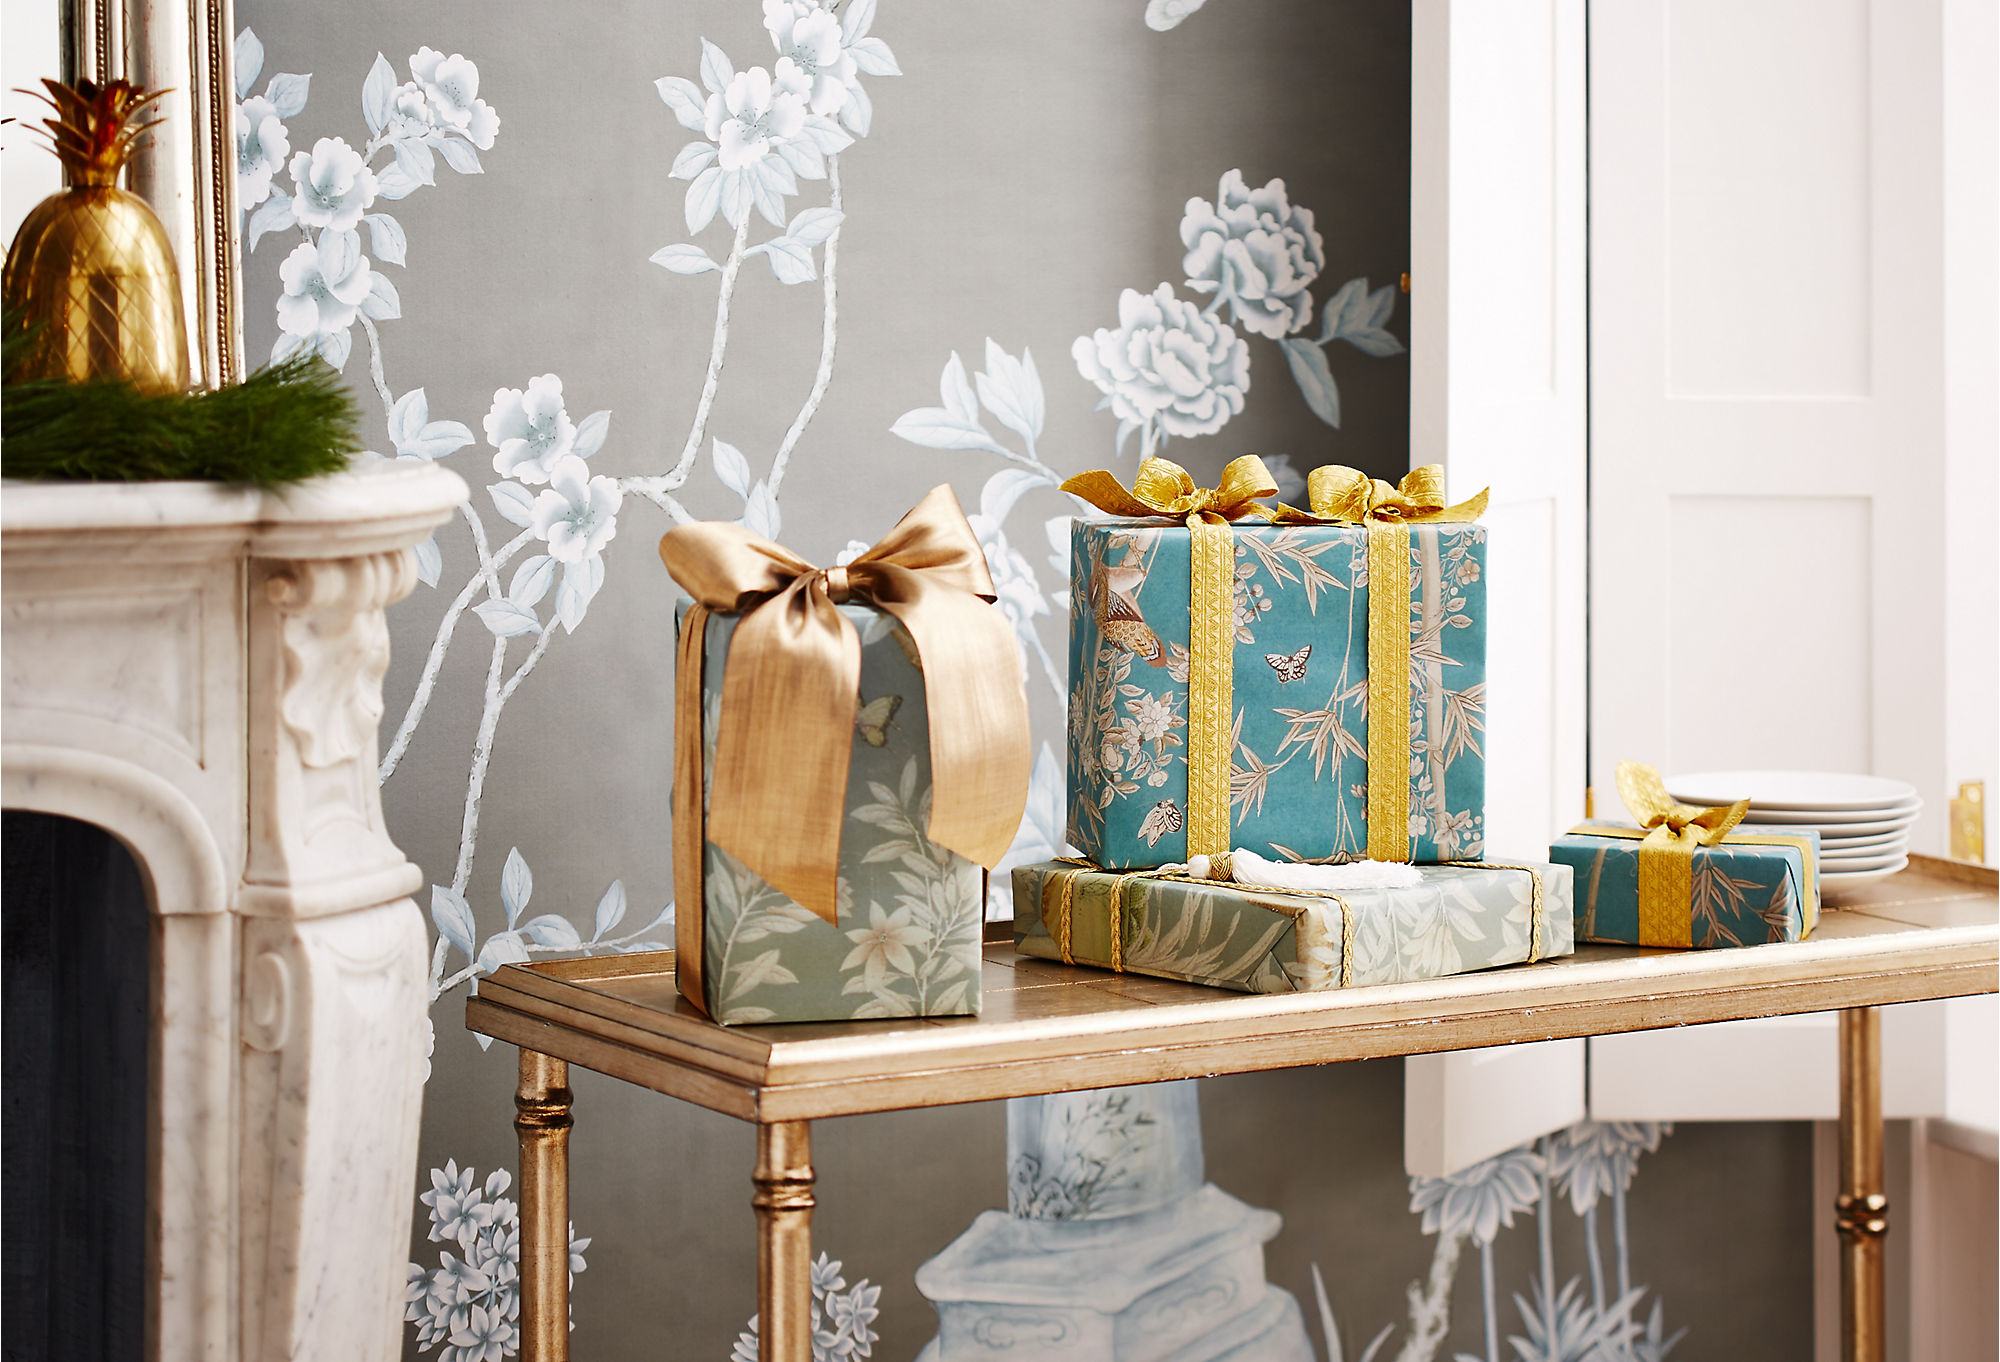 Chinoiserie paper is the perfectwrapping for a New Traditionalist gift.